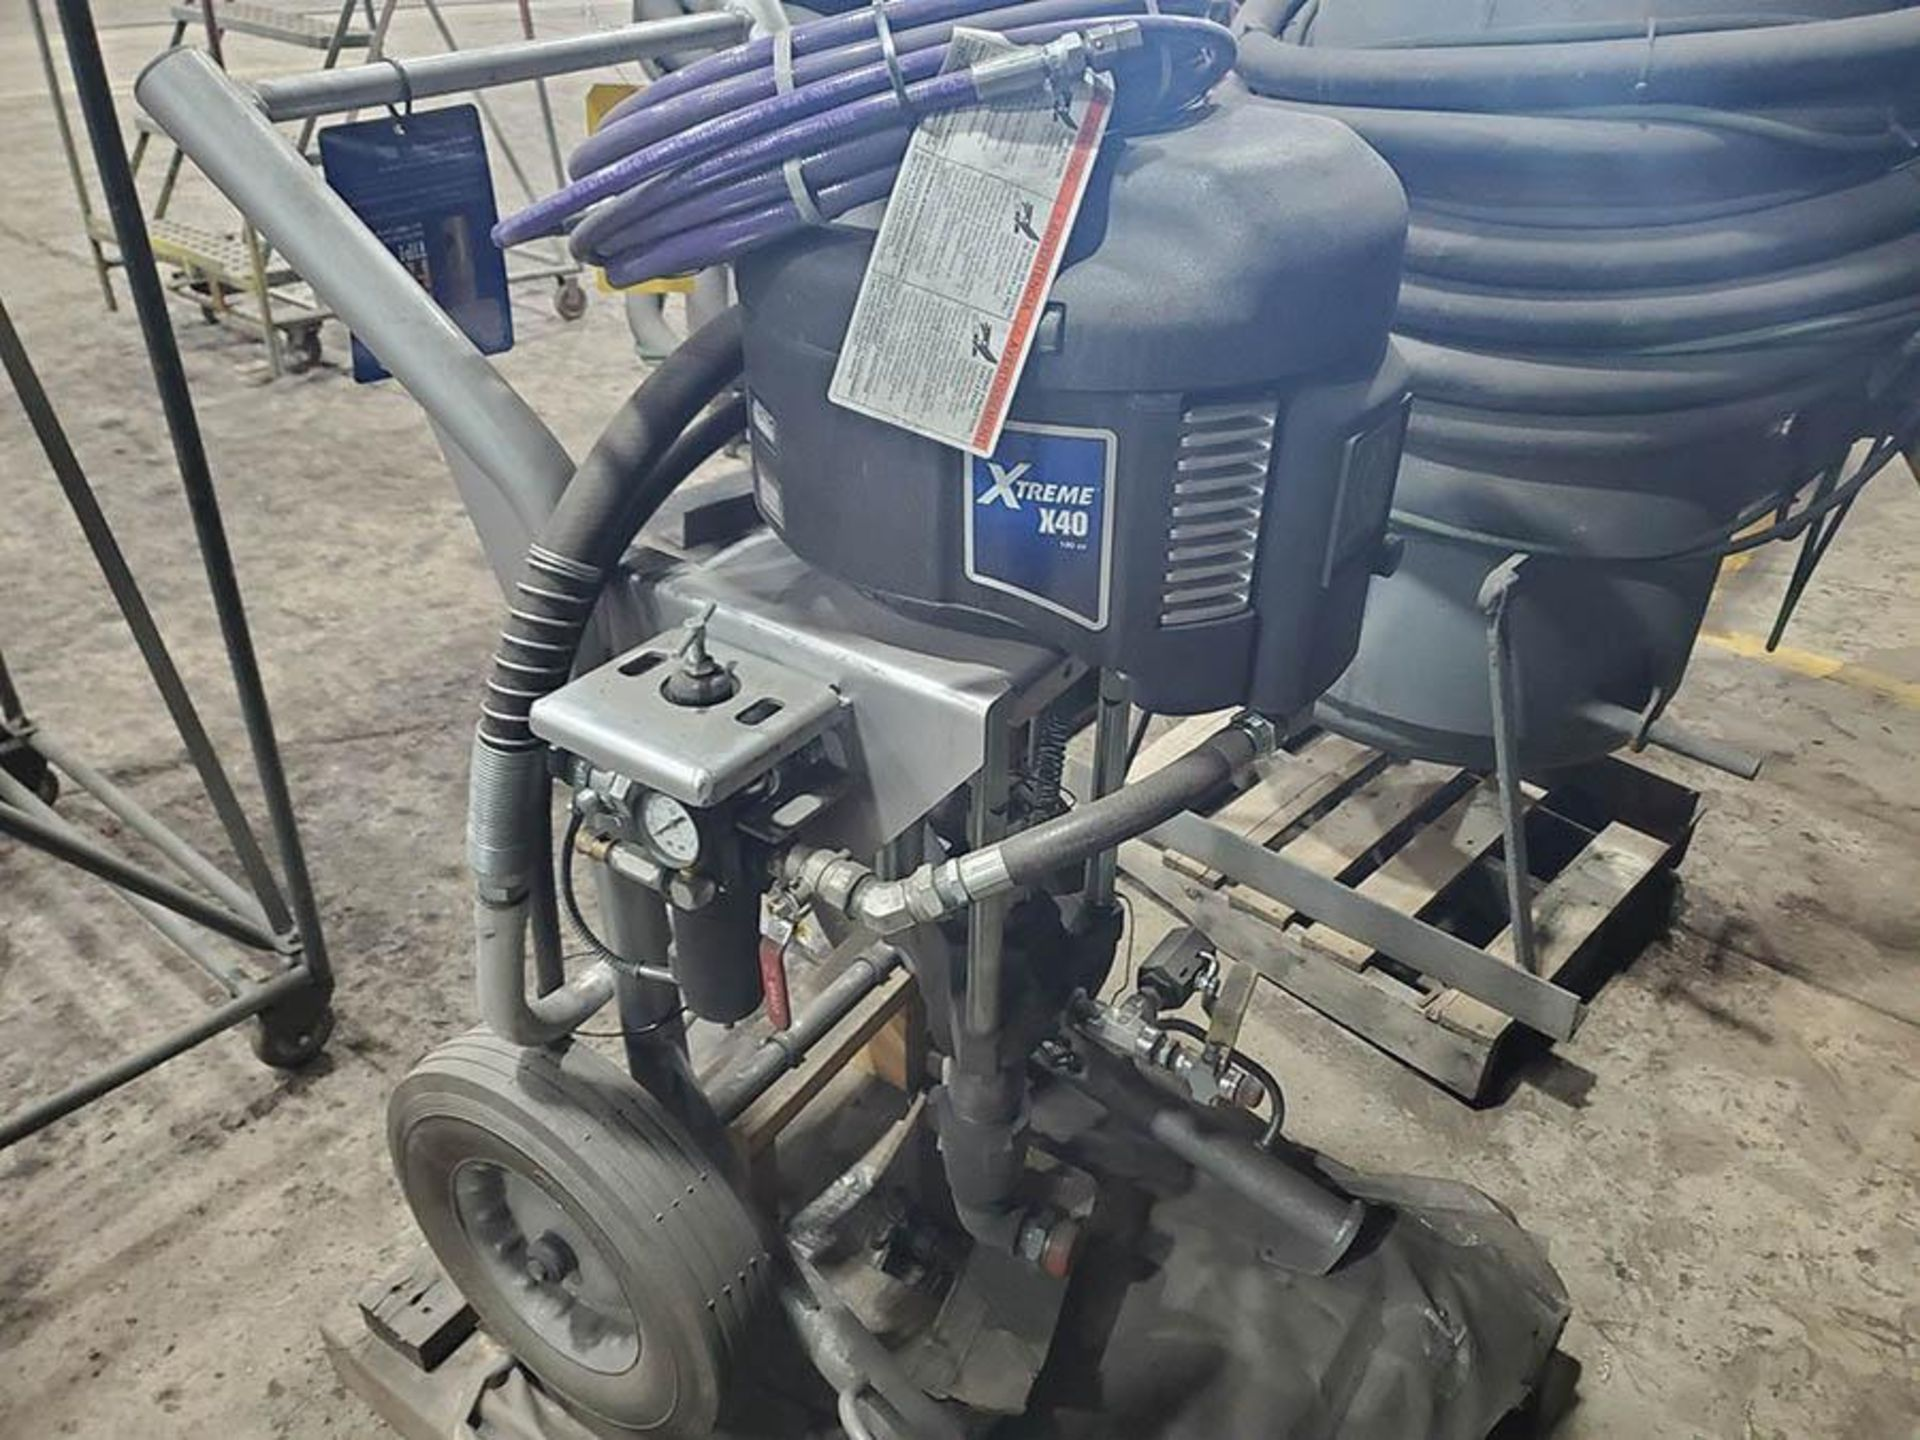 GRACO XTREME X40 SPRAYER, PART NO. 287974, S/N A9544, SERIES C16C 100PSI MAX - Image 3 of 7